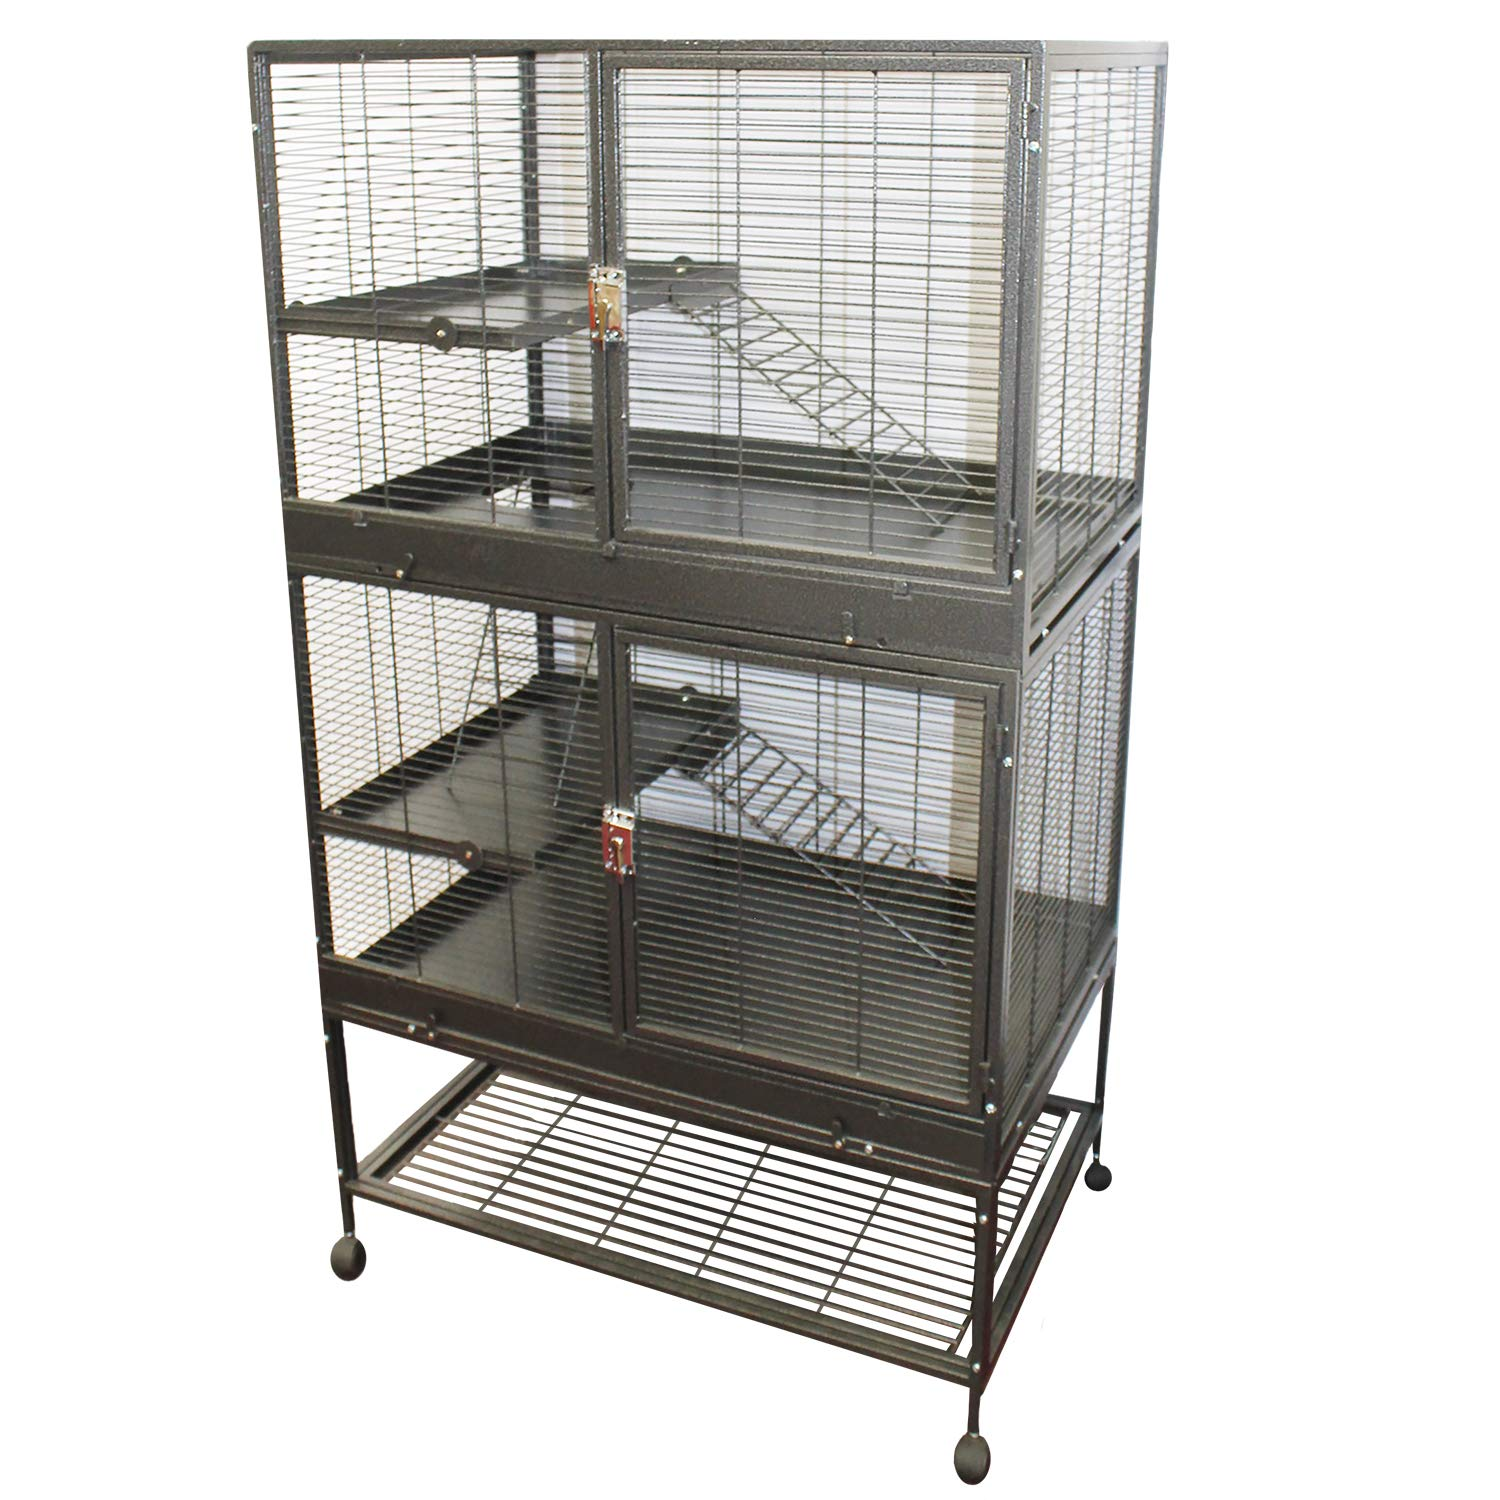 Exotic Nutrition New! Durable All-Metal Mansion Cage for Chinchillas, Rats, Ferrets, Degus, Prairie Dogs (4-Level) by Exotic Nutrition